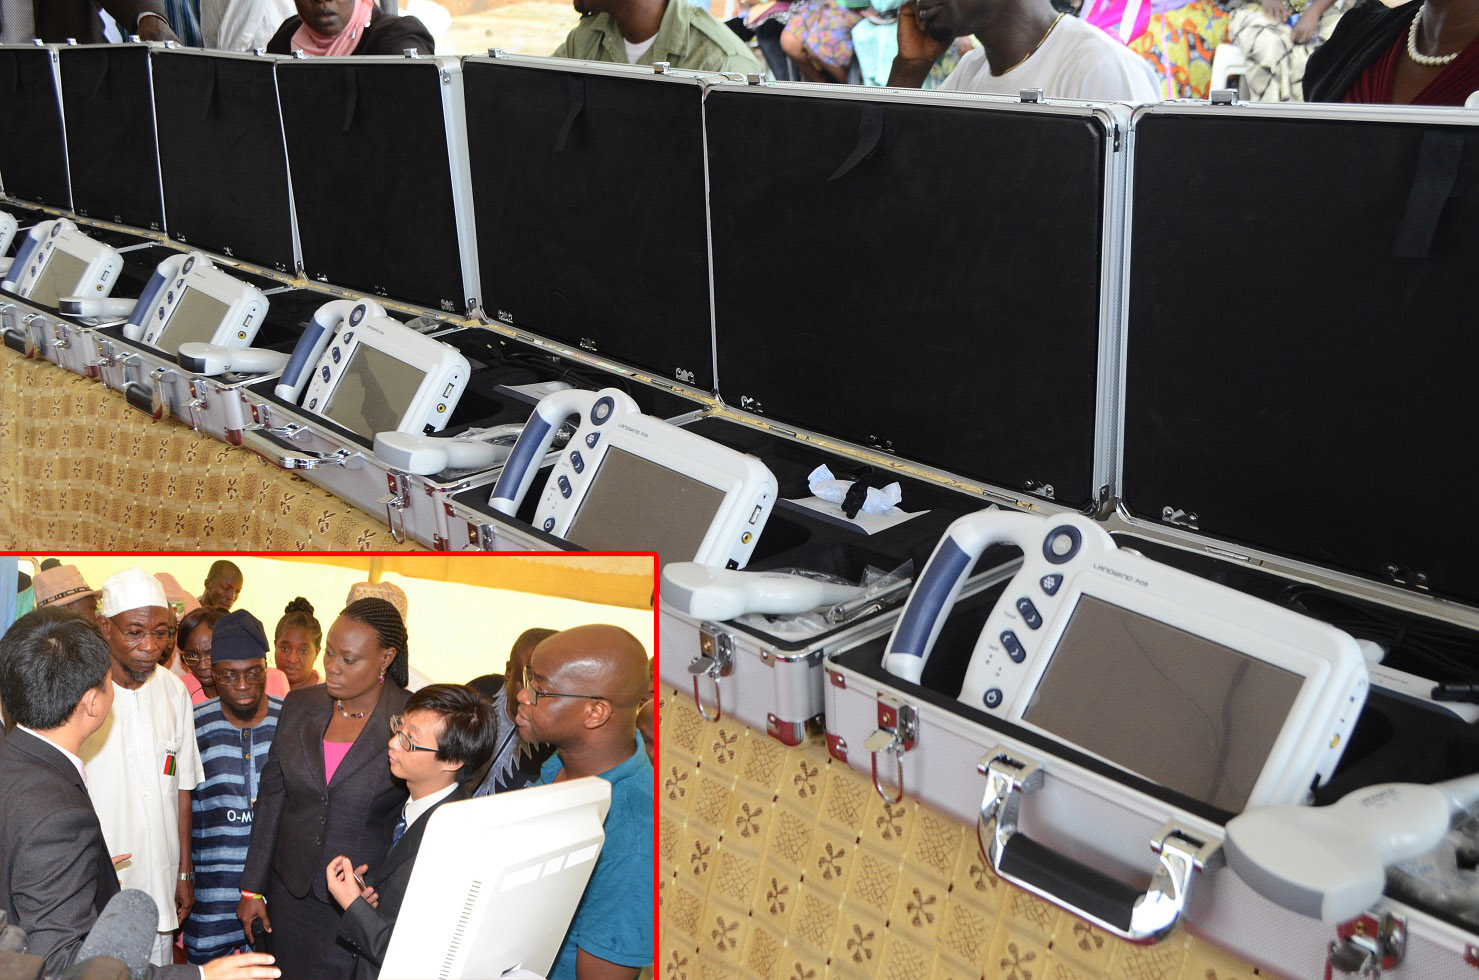 The newly Commissioned Hand-held Ultrasound Diagnostic (Touch Screen) Scanners and Mirror 3D (colour) Doppler Ultrasound Diagnostic Scanner distributed to State hospitals in Osun at Nelson Mandela Freedom Park, Osogbo, State of Osun. Insert: From left, Sales Engineer, Landwind Medical, China, Jeffery Iv; Governor State of Osun, Ogbeni Rauf Aregbesola; Special Adviser for Health, Dr Rafiu Isamotu; Commissioner for Health, Dr Temitope Ilori; Dr Lei Hao and others on Thursday 17-07-2014